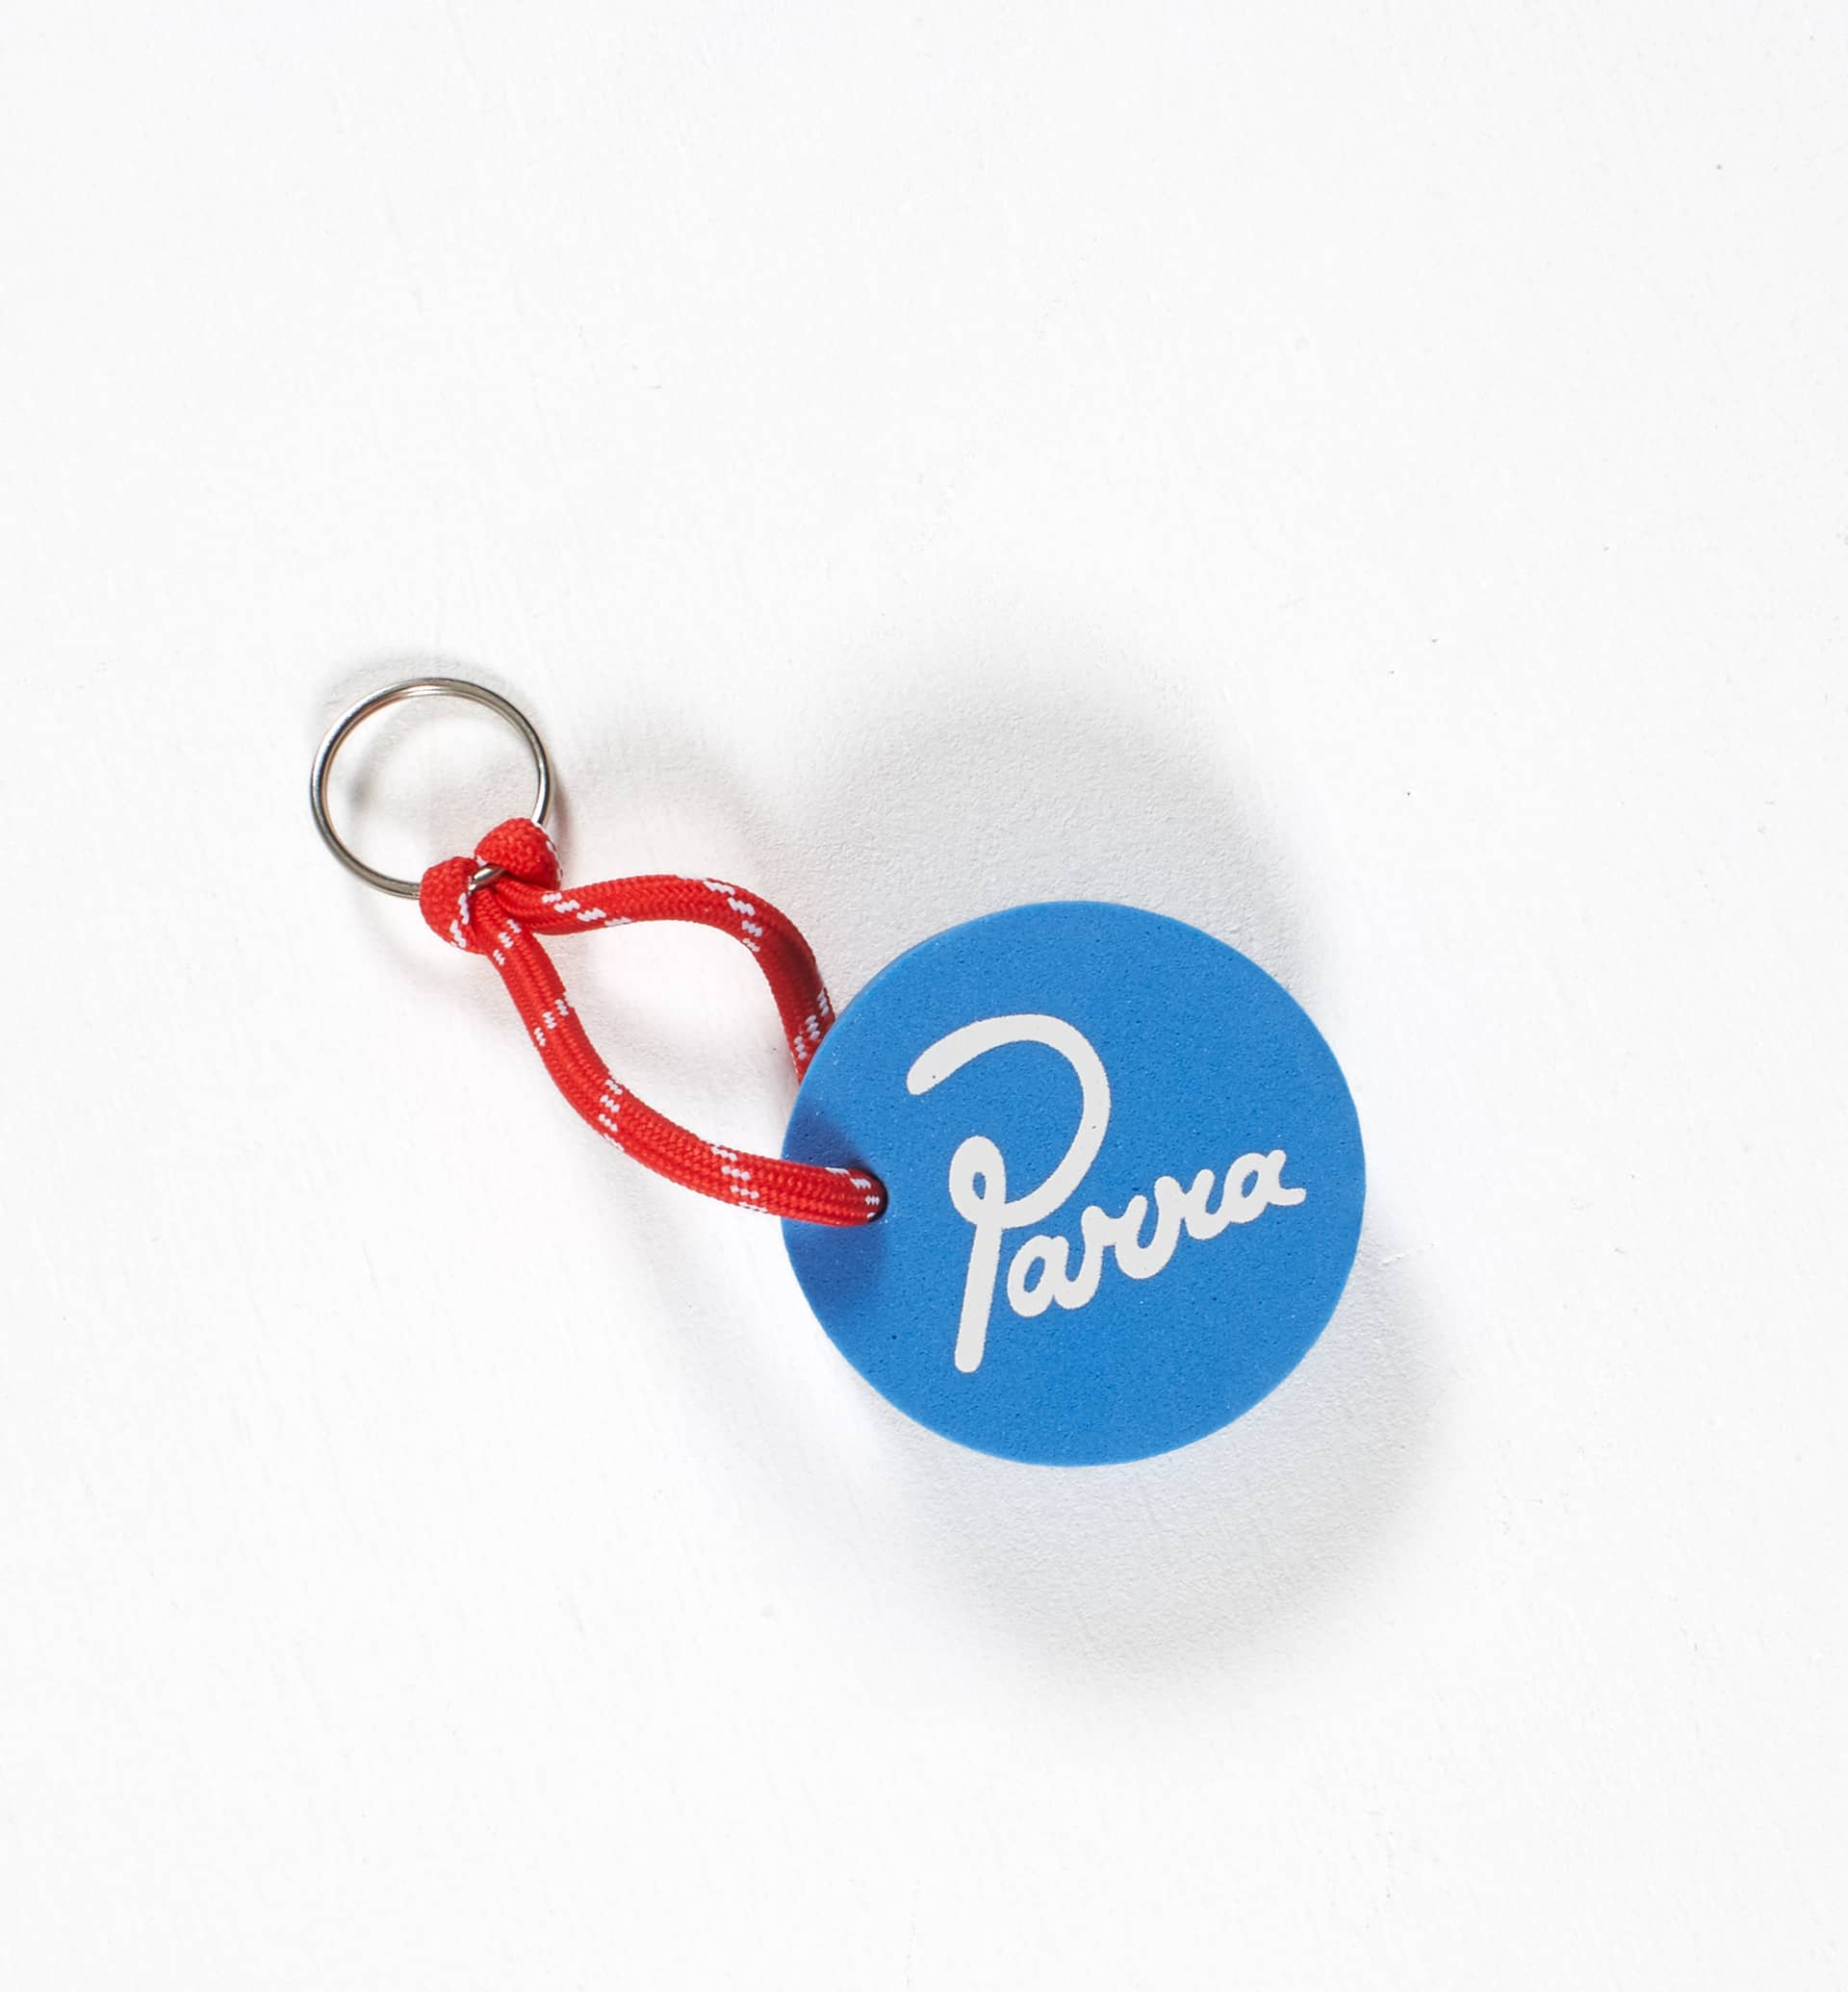 Parra - floaty keychain signature